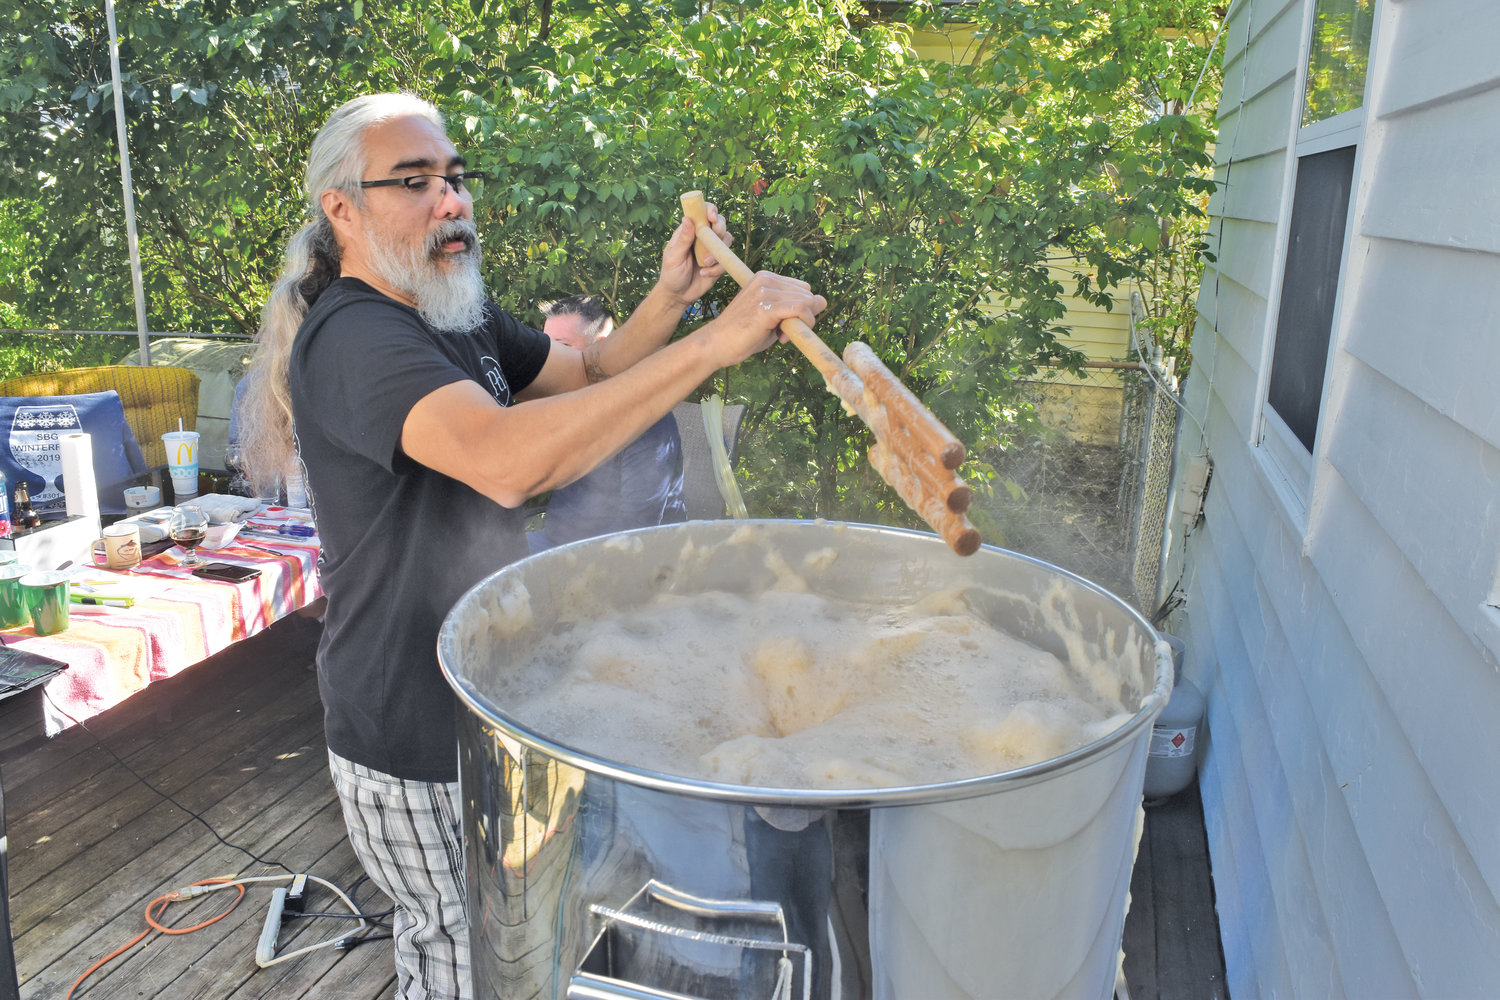 Homebrewer John Frederick stirs a boiling homebrew vat of rye and hops.